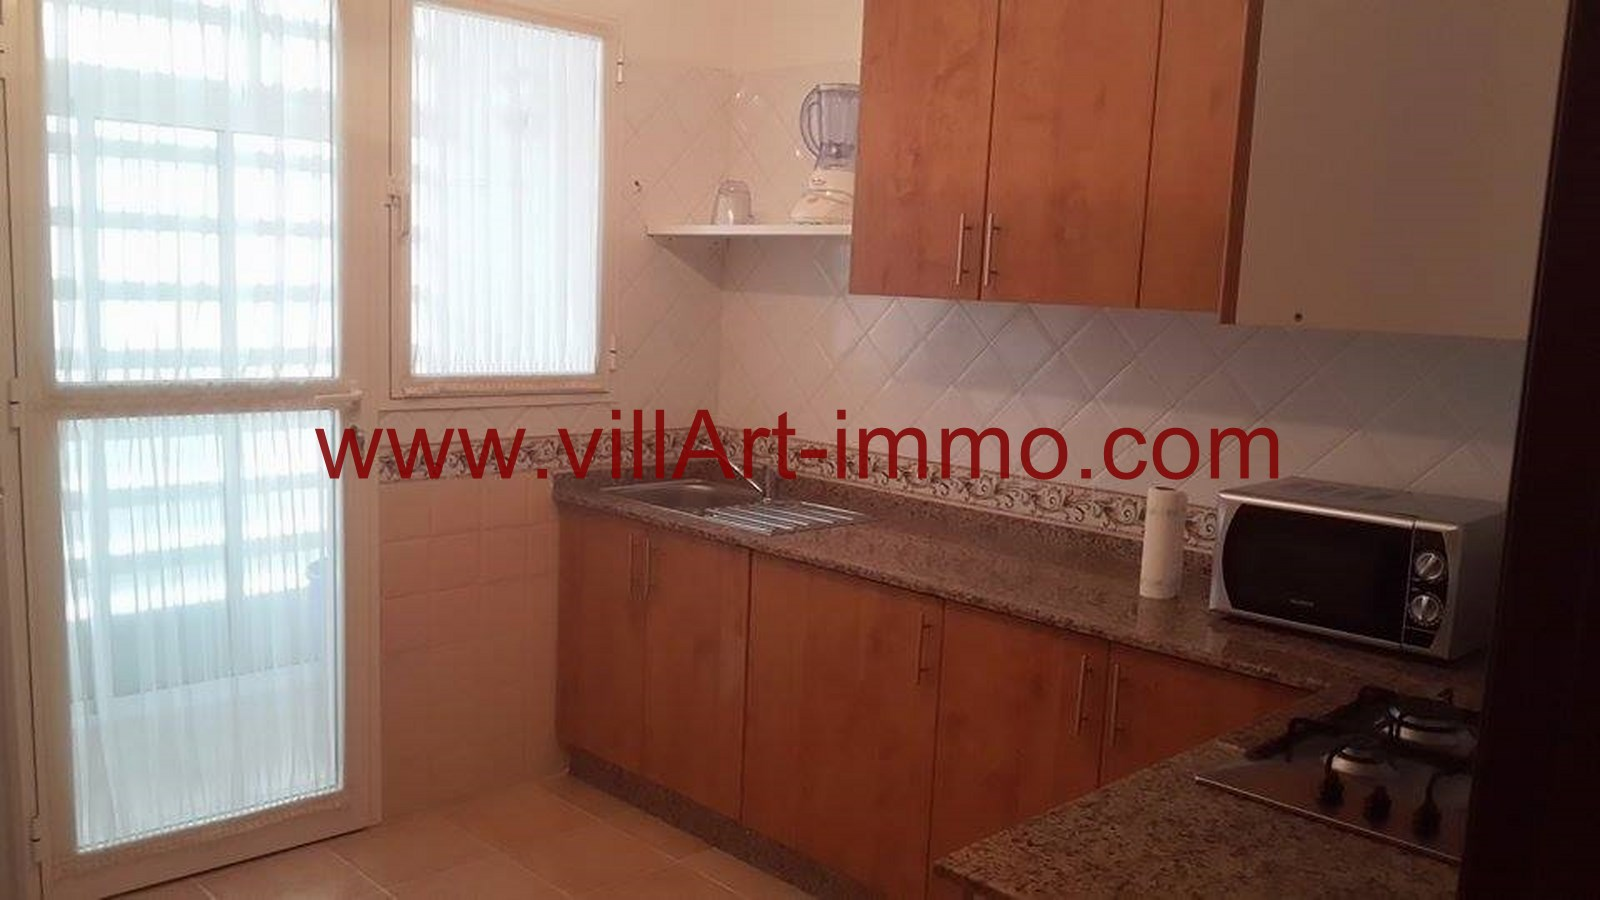 A louer un appartement f4 meubl tanger villart for Appartement meuble location